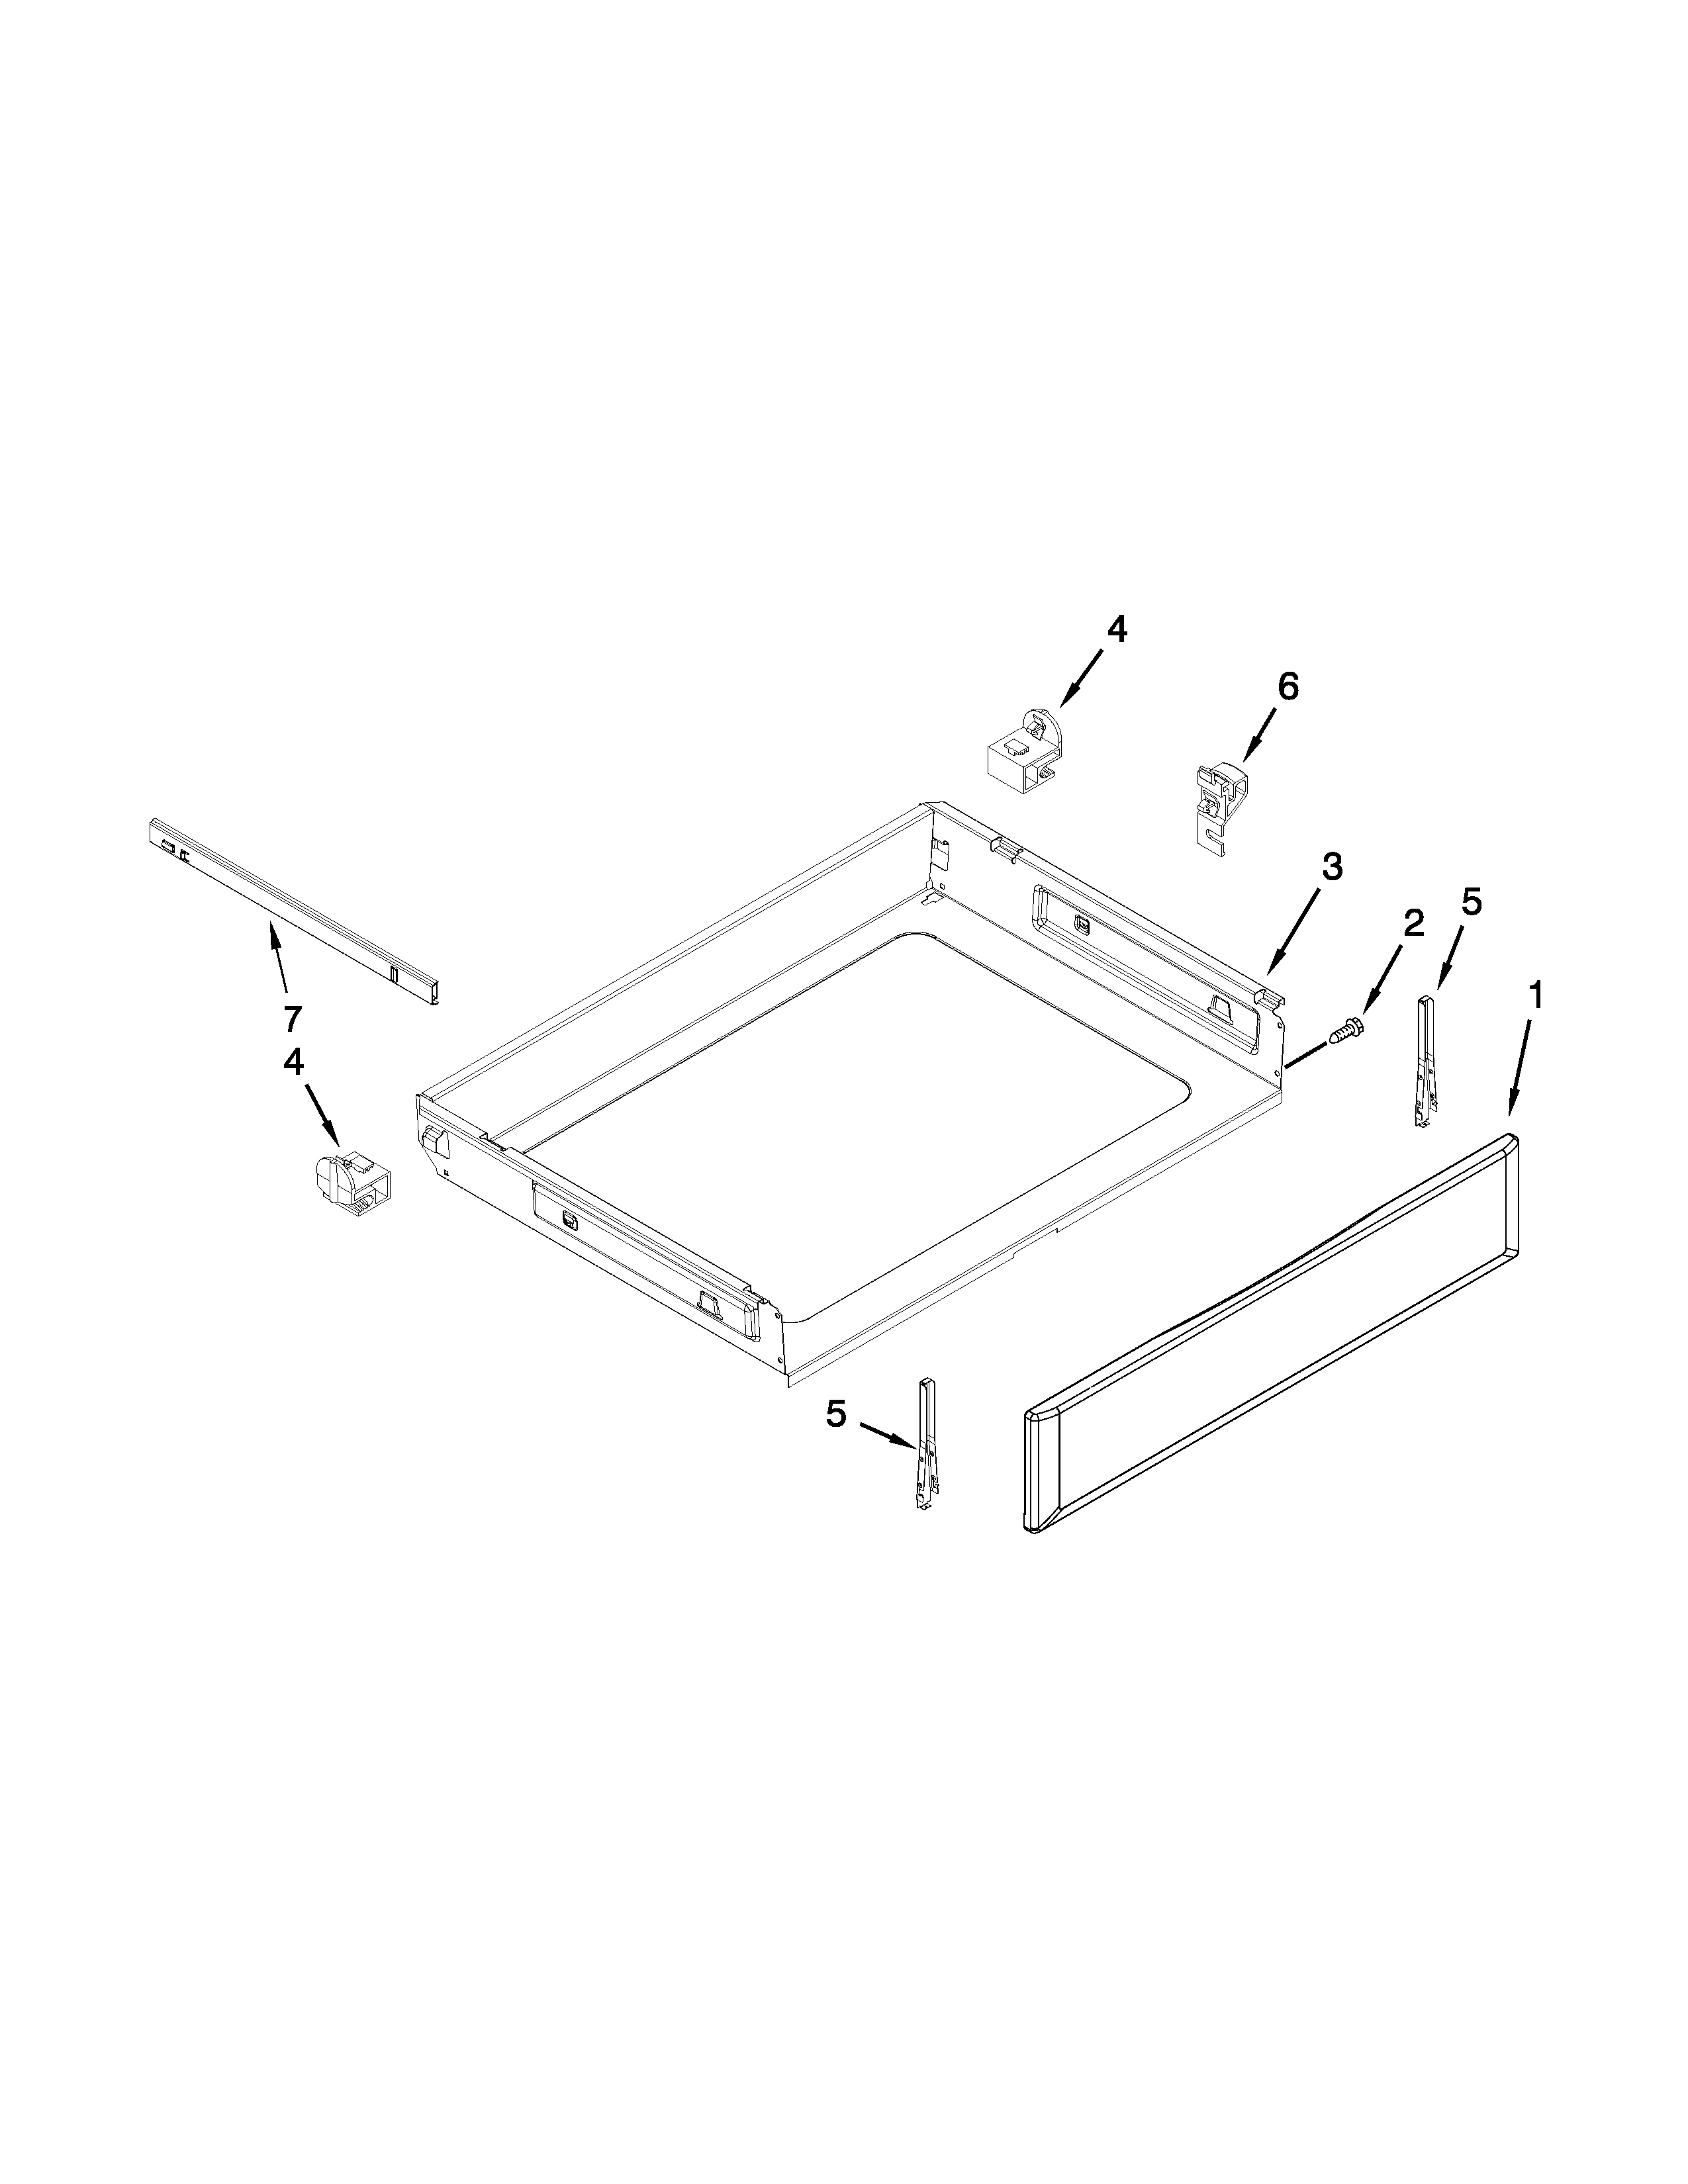 Maytag YMER8775BS0 drawer parts diagram